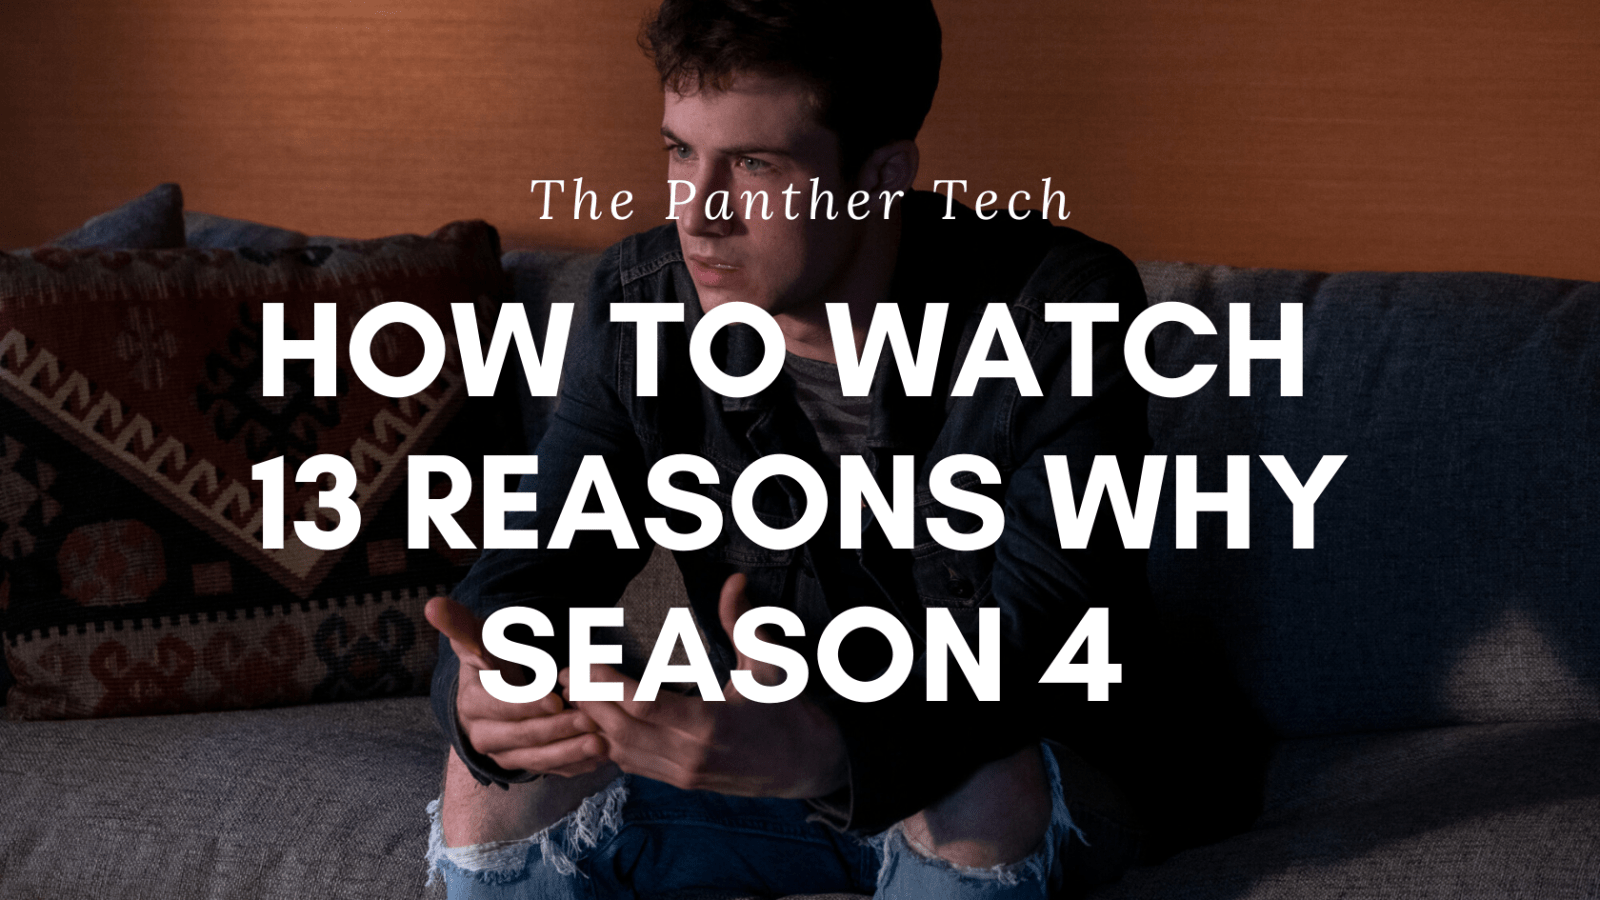 How To Watch Final 13 Reasons Why Season 4